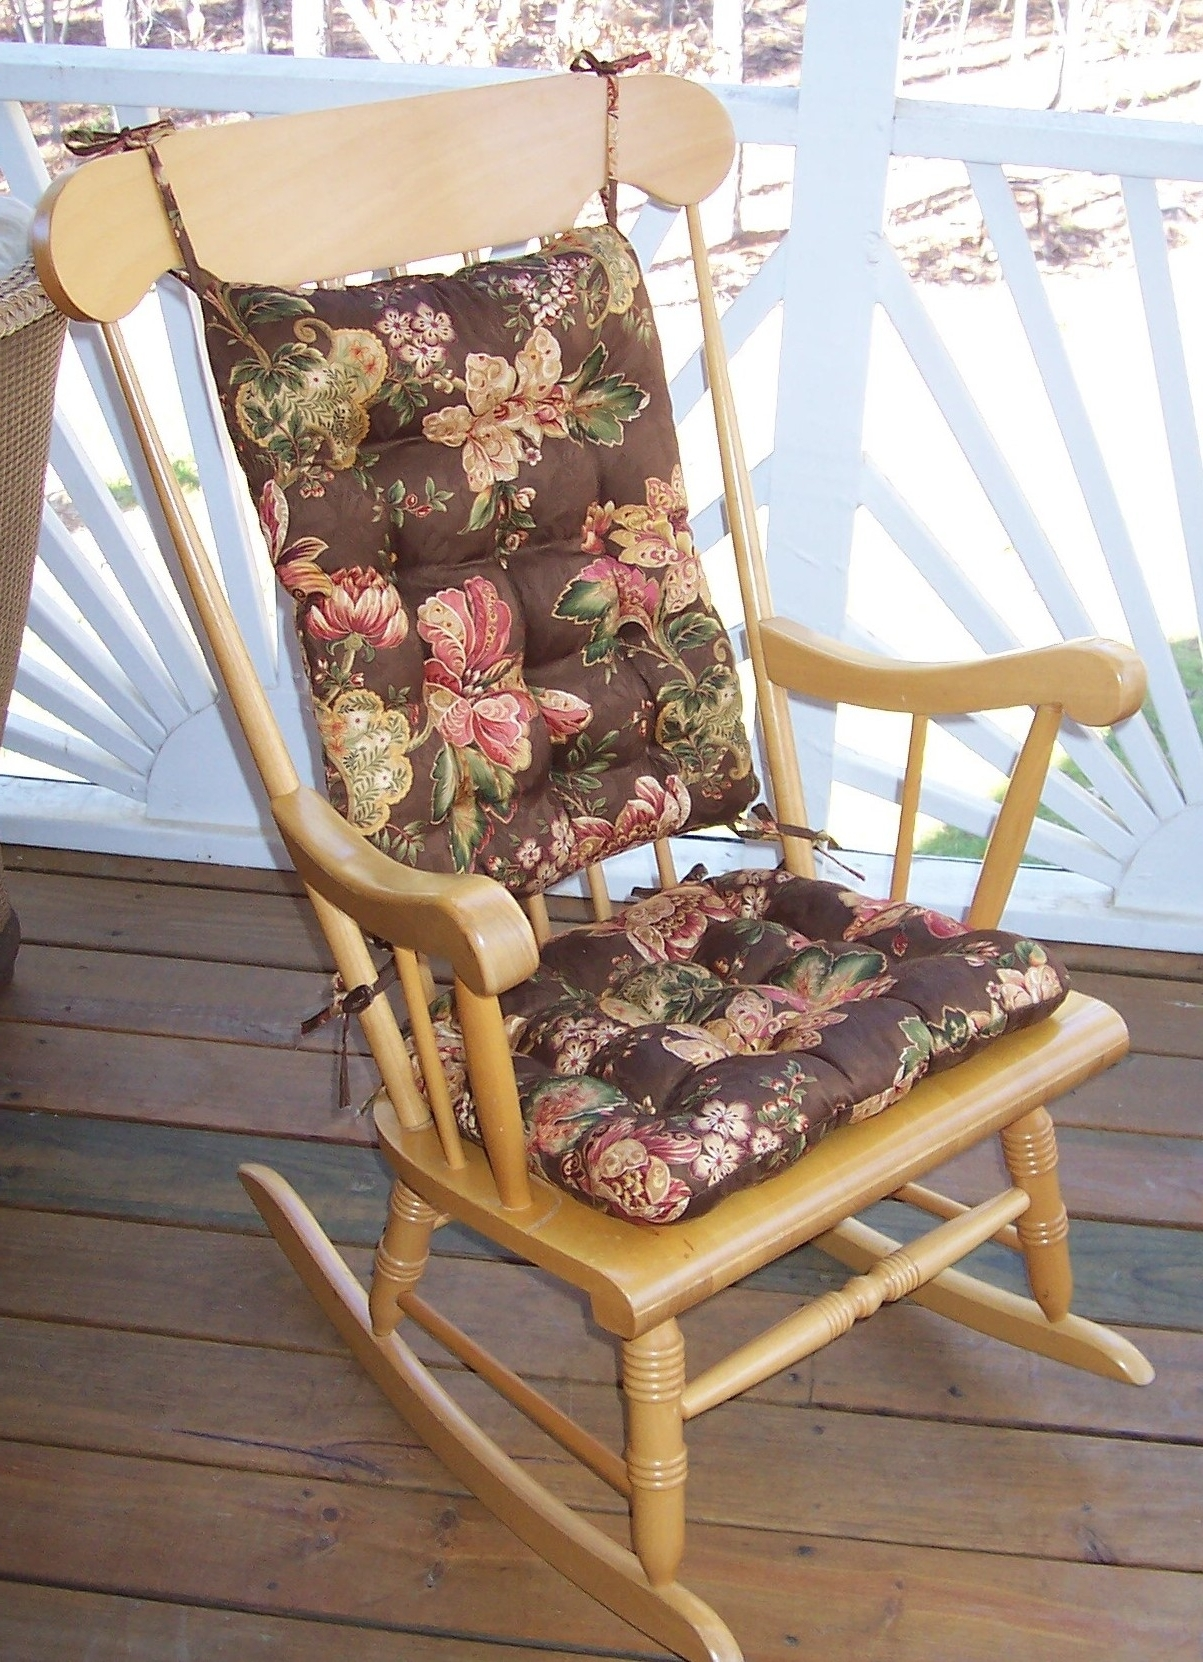 Fashionable Rocking Chairs With Cushions Inside Rocking Chair Cushion Sets And More – Clearance!! (View 5 of 20)